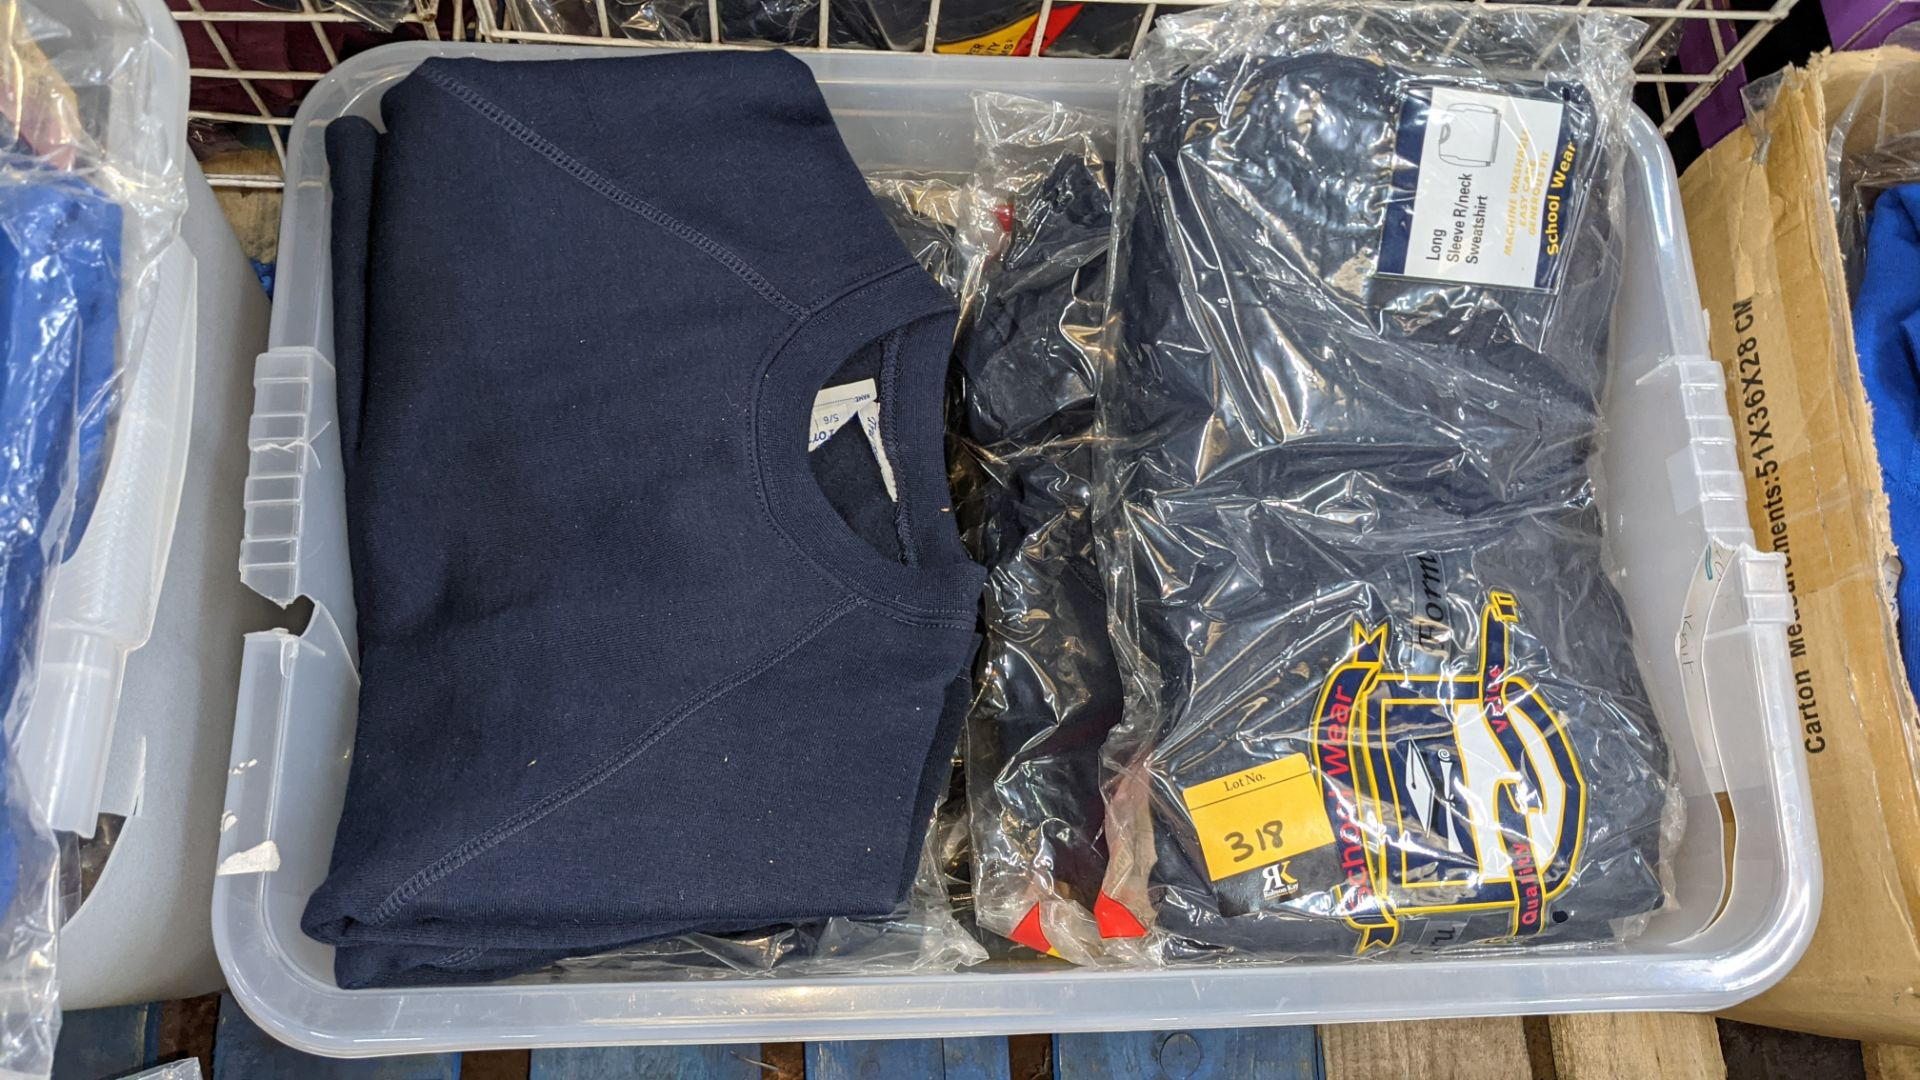 Approx 19 off blue children's sweatshirts & similar - the contents of 1 crate. NB crate excluded - Image 3 of 4